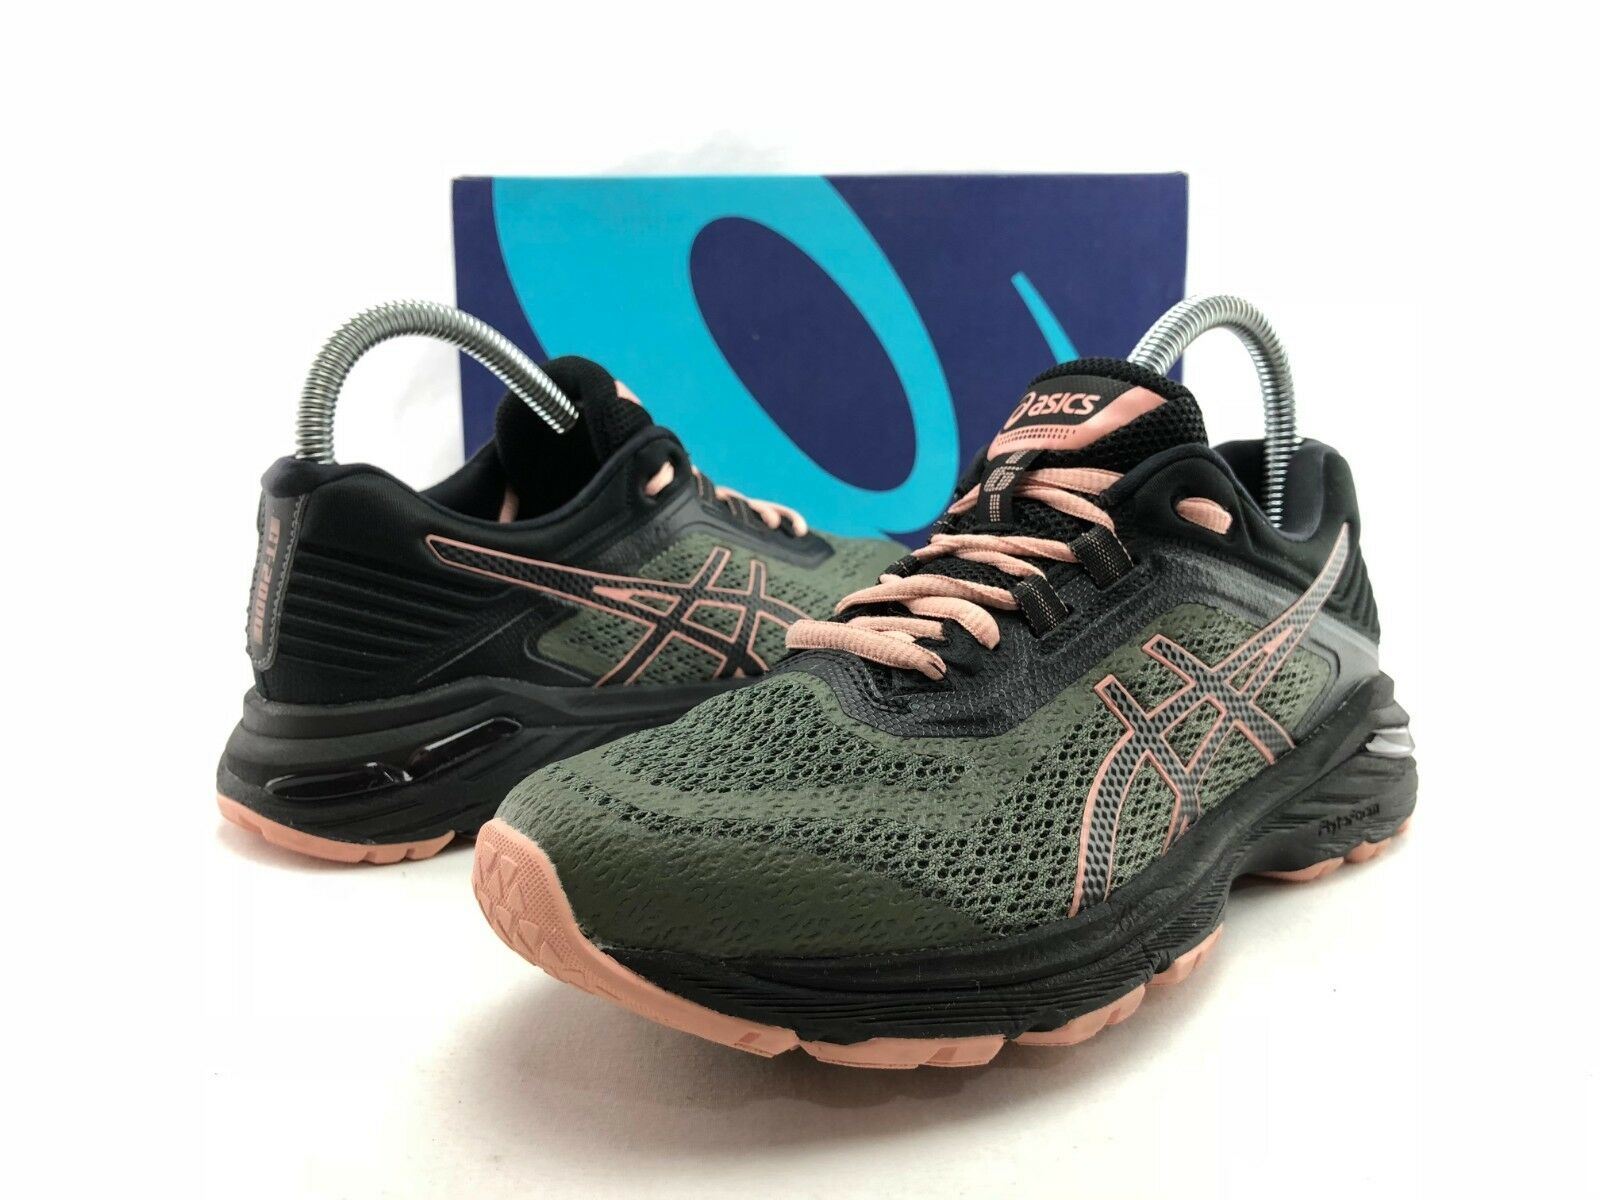 ASICS Negro 10 gt-2018 6 Mujer Negro ASICS Verde Rosa Athletic running Zapatos US 8 C 316 Wild Casual Shoes 3dac08